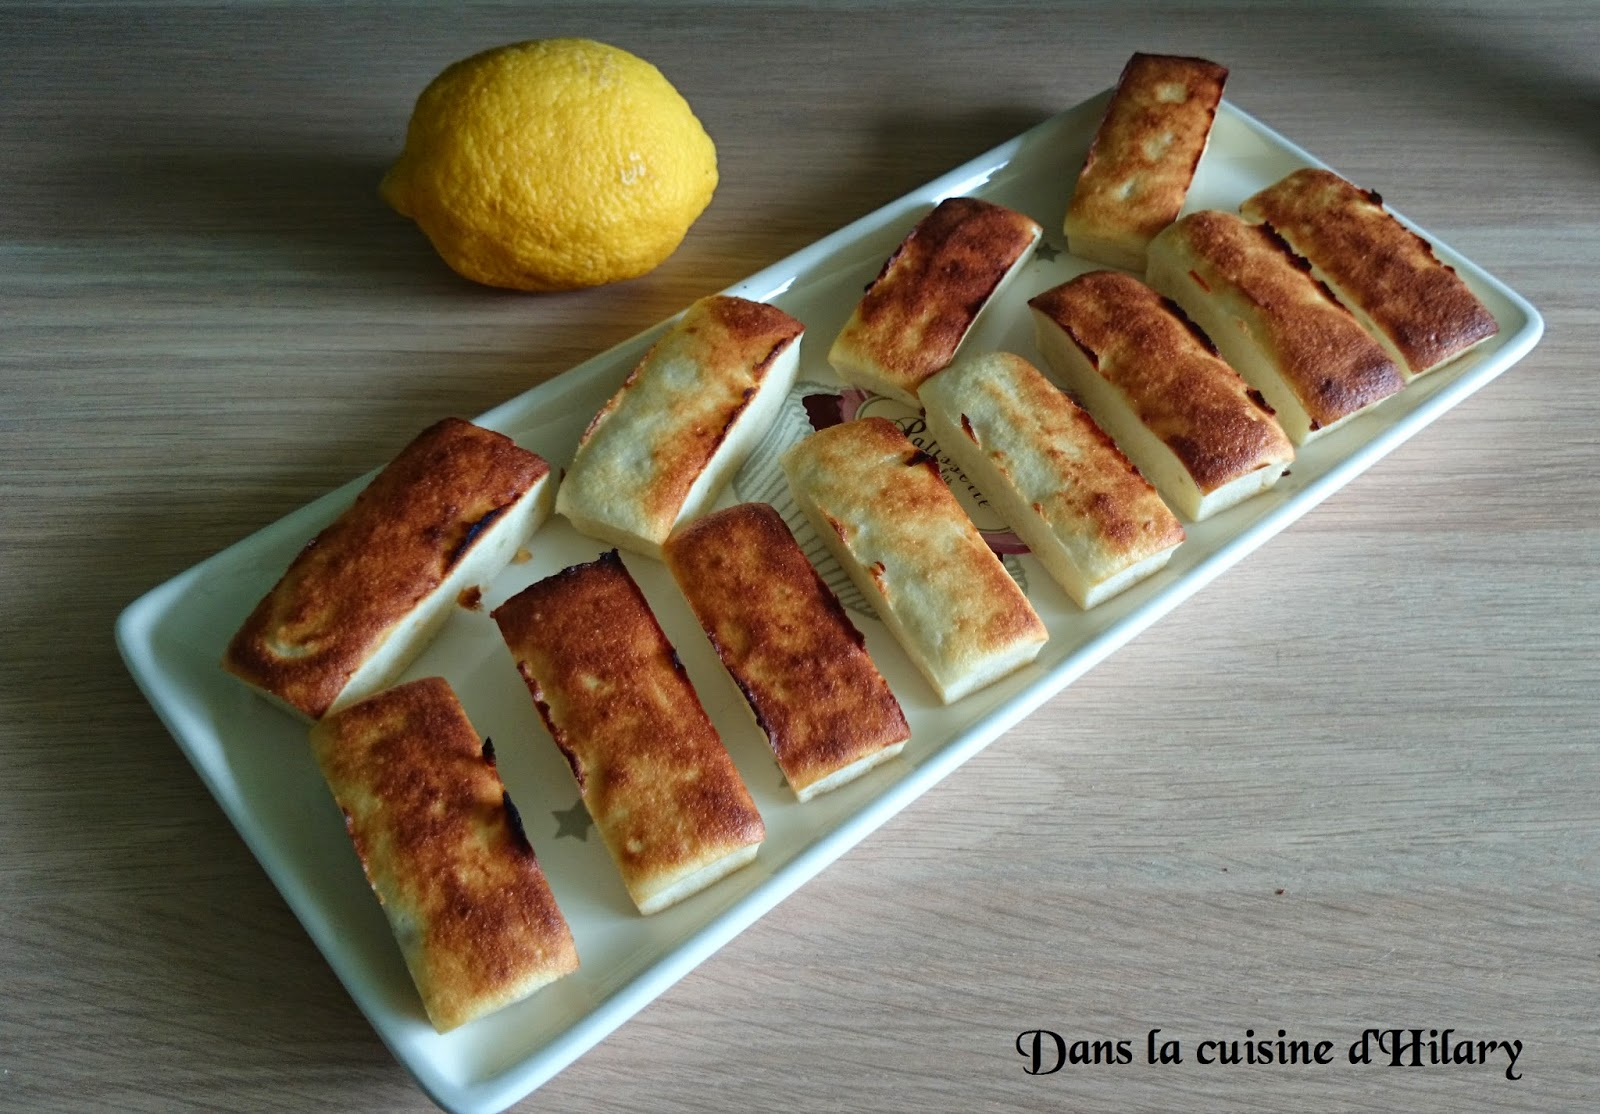 Financier au citron